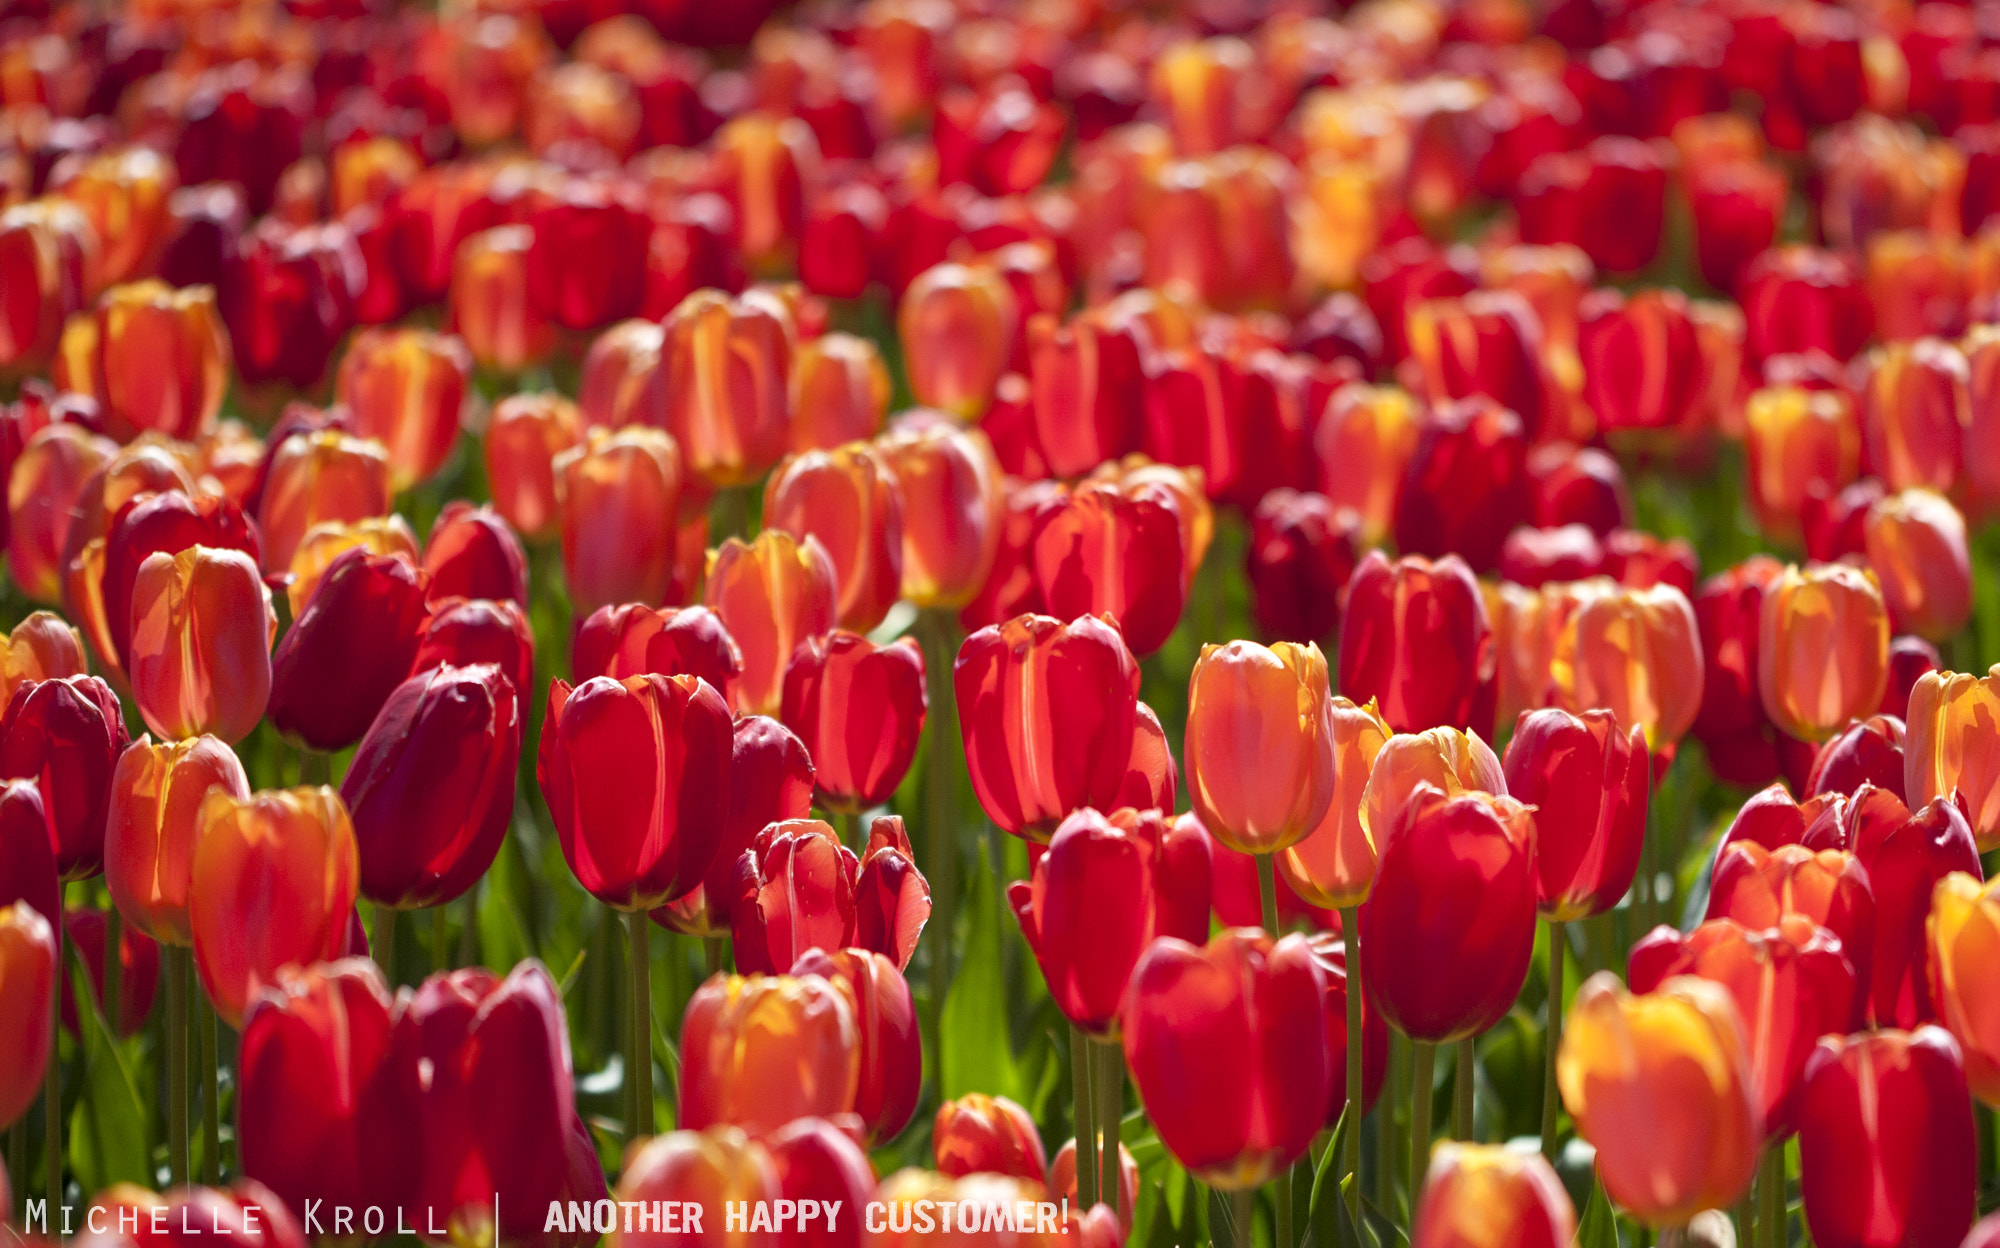 Photograph Tulip overload! by Michelle Kroll on 500px